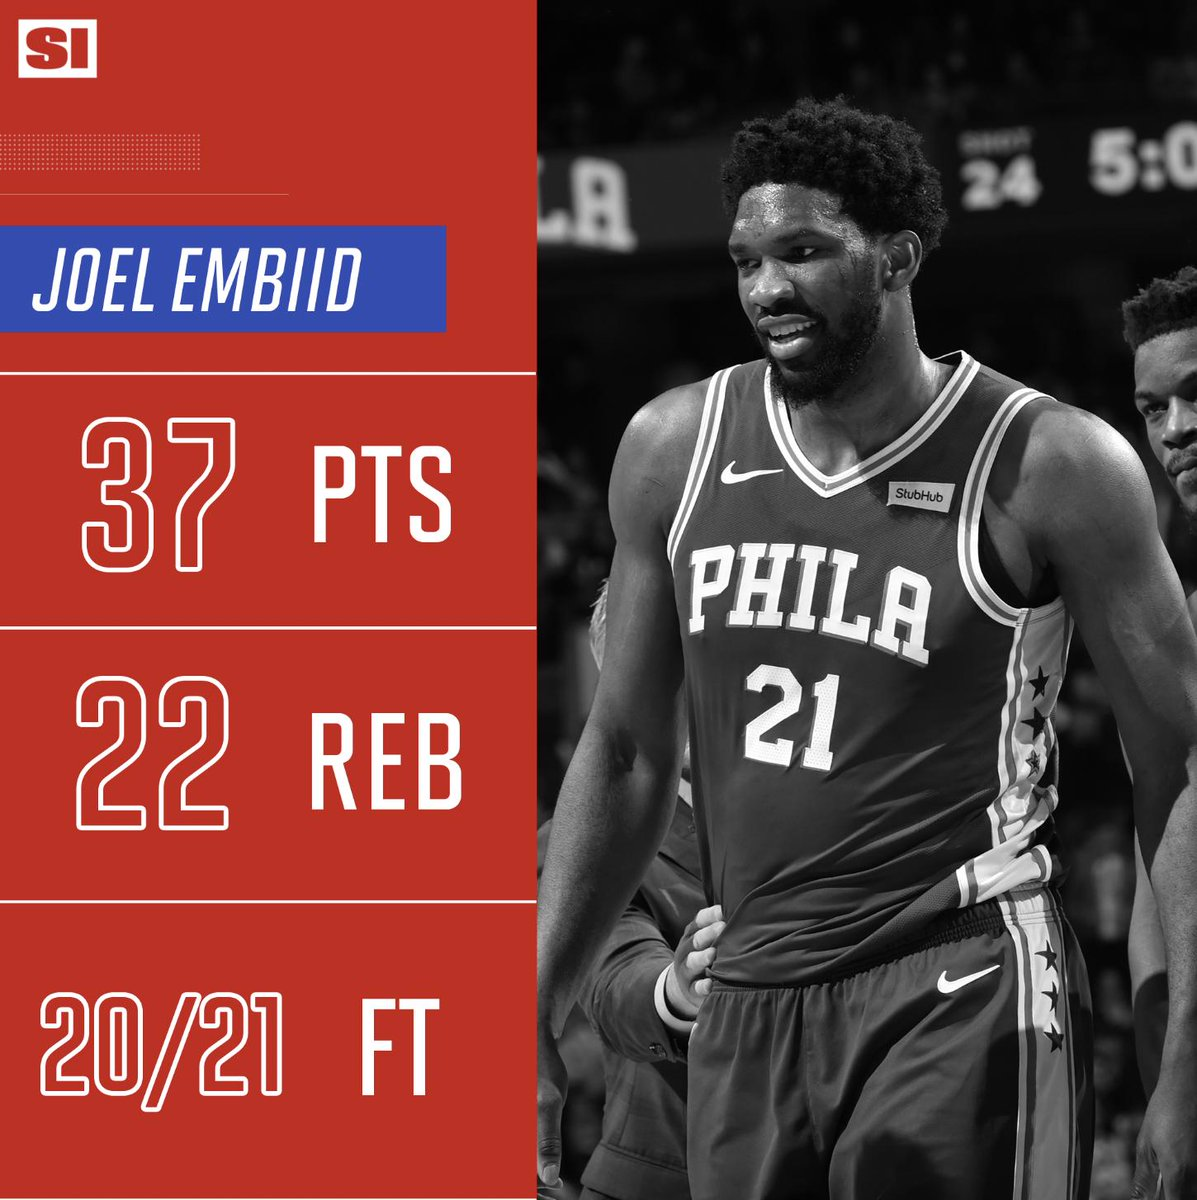 Joel Embiid heard everyone talking about the Sixers not being able to beat the Celtics and got the job DONE https://t.co/dsGz1DoKXW